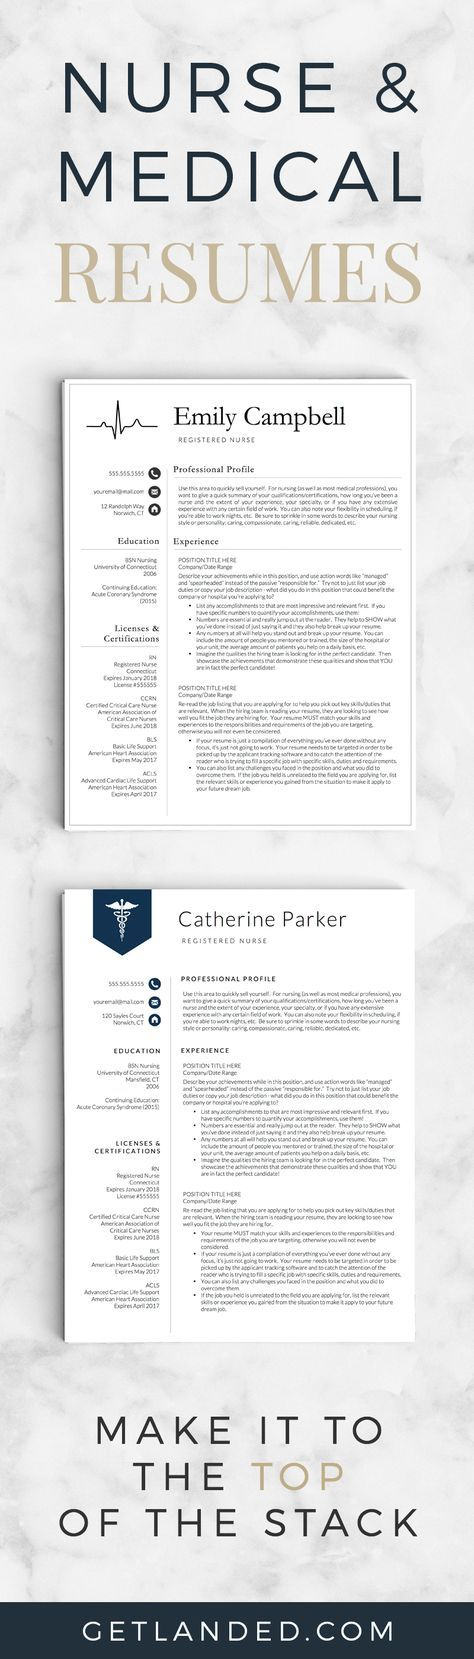 52 best Work Ideas images on Pinterest Writers, Resume examples - freelance photographer resume sample